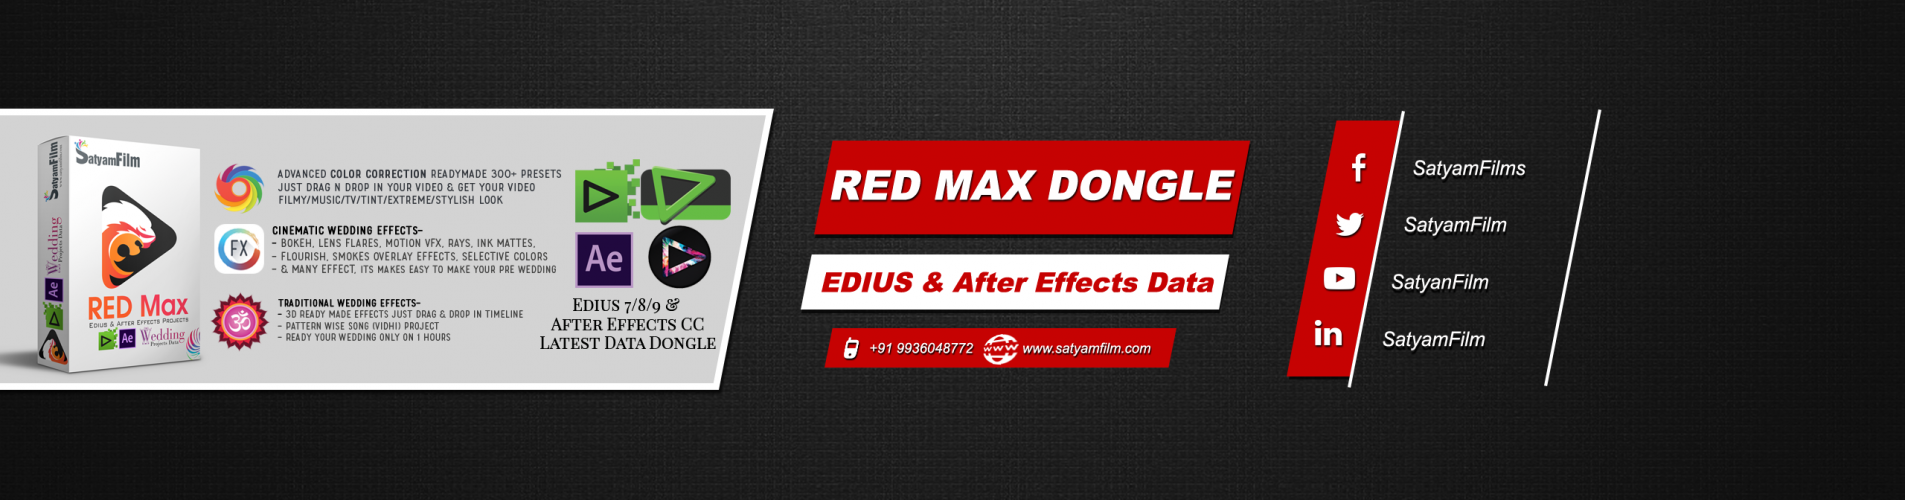 Pal Pal Dil Ke Paas - Edius Pro 9 3D Song   Edius Wedding Project   Video Mixing Editing System RED Max : Edius Pro 9   Edius Pro 8   Edius Pro 7   Adobe After Effects CC 1000+ Projects & 5000+ Effects With 2TB Internal HDD. Portrait Song, Title Project Satyam Film - Offering Edius Pro 7/8/9 & After Effects Wedding Projects Dongle (RED Max) , वीडियो संपादन We are a leading Manufacturer of MixMax Pro: Edius Pro 9 & After Effects Projects Dongle, Edius Pro 7/8/9 & After Effects Wedding Projects Dongle (RED Max) RED Max : Edius Pro 7/8/9   After Effects CC – 1000+ Projects collection with added creative graphics, effects, visual fx & beats matching projects. EDIUS X 10, EDIUS X , EDIUS 10